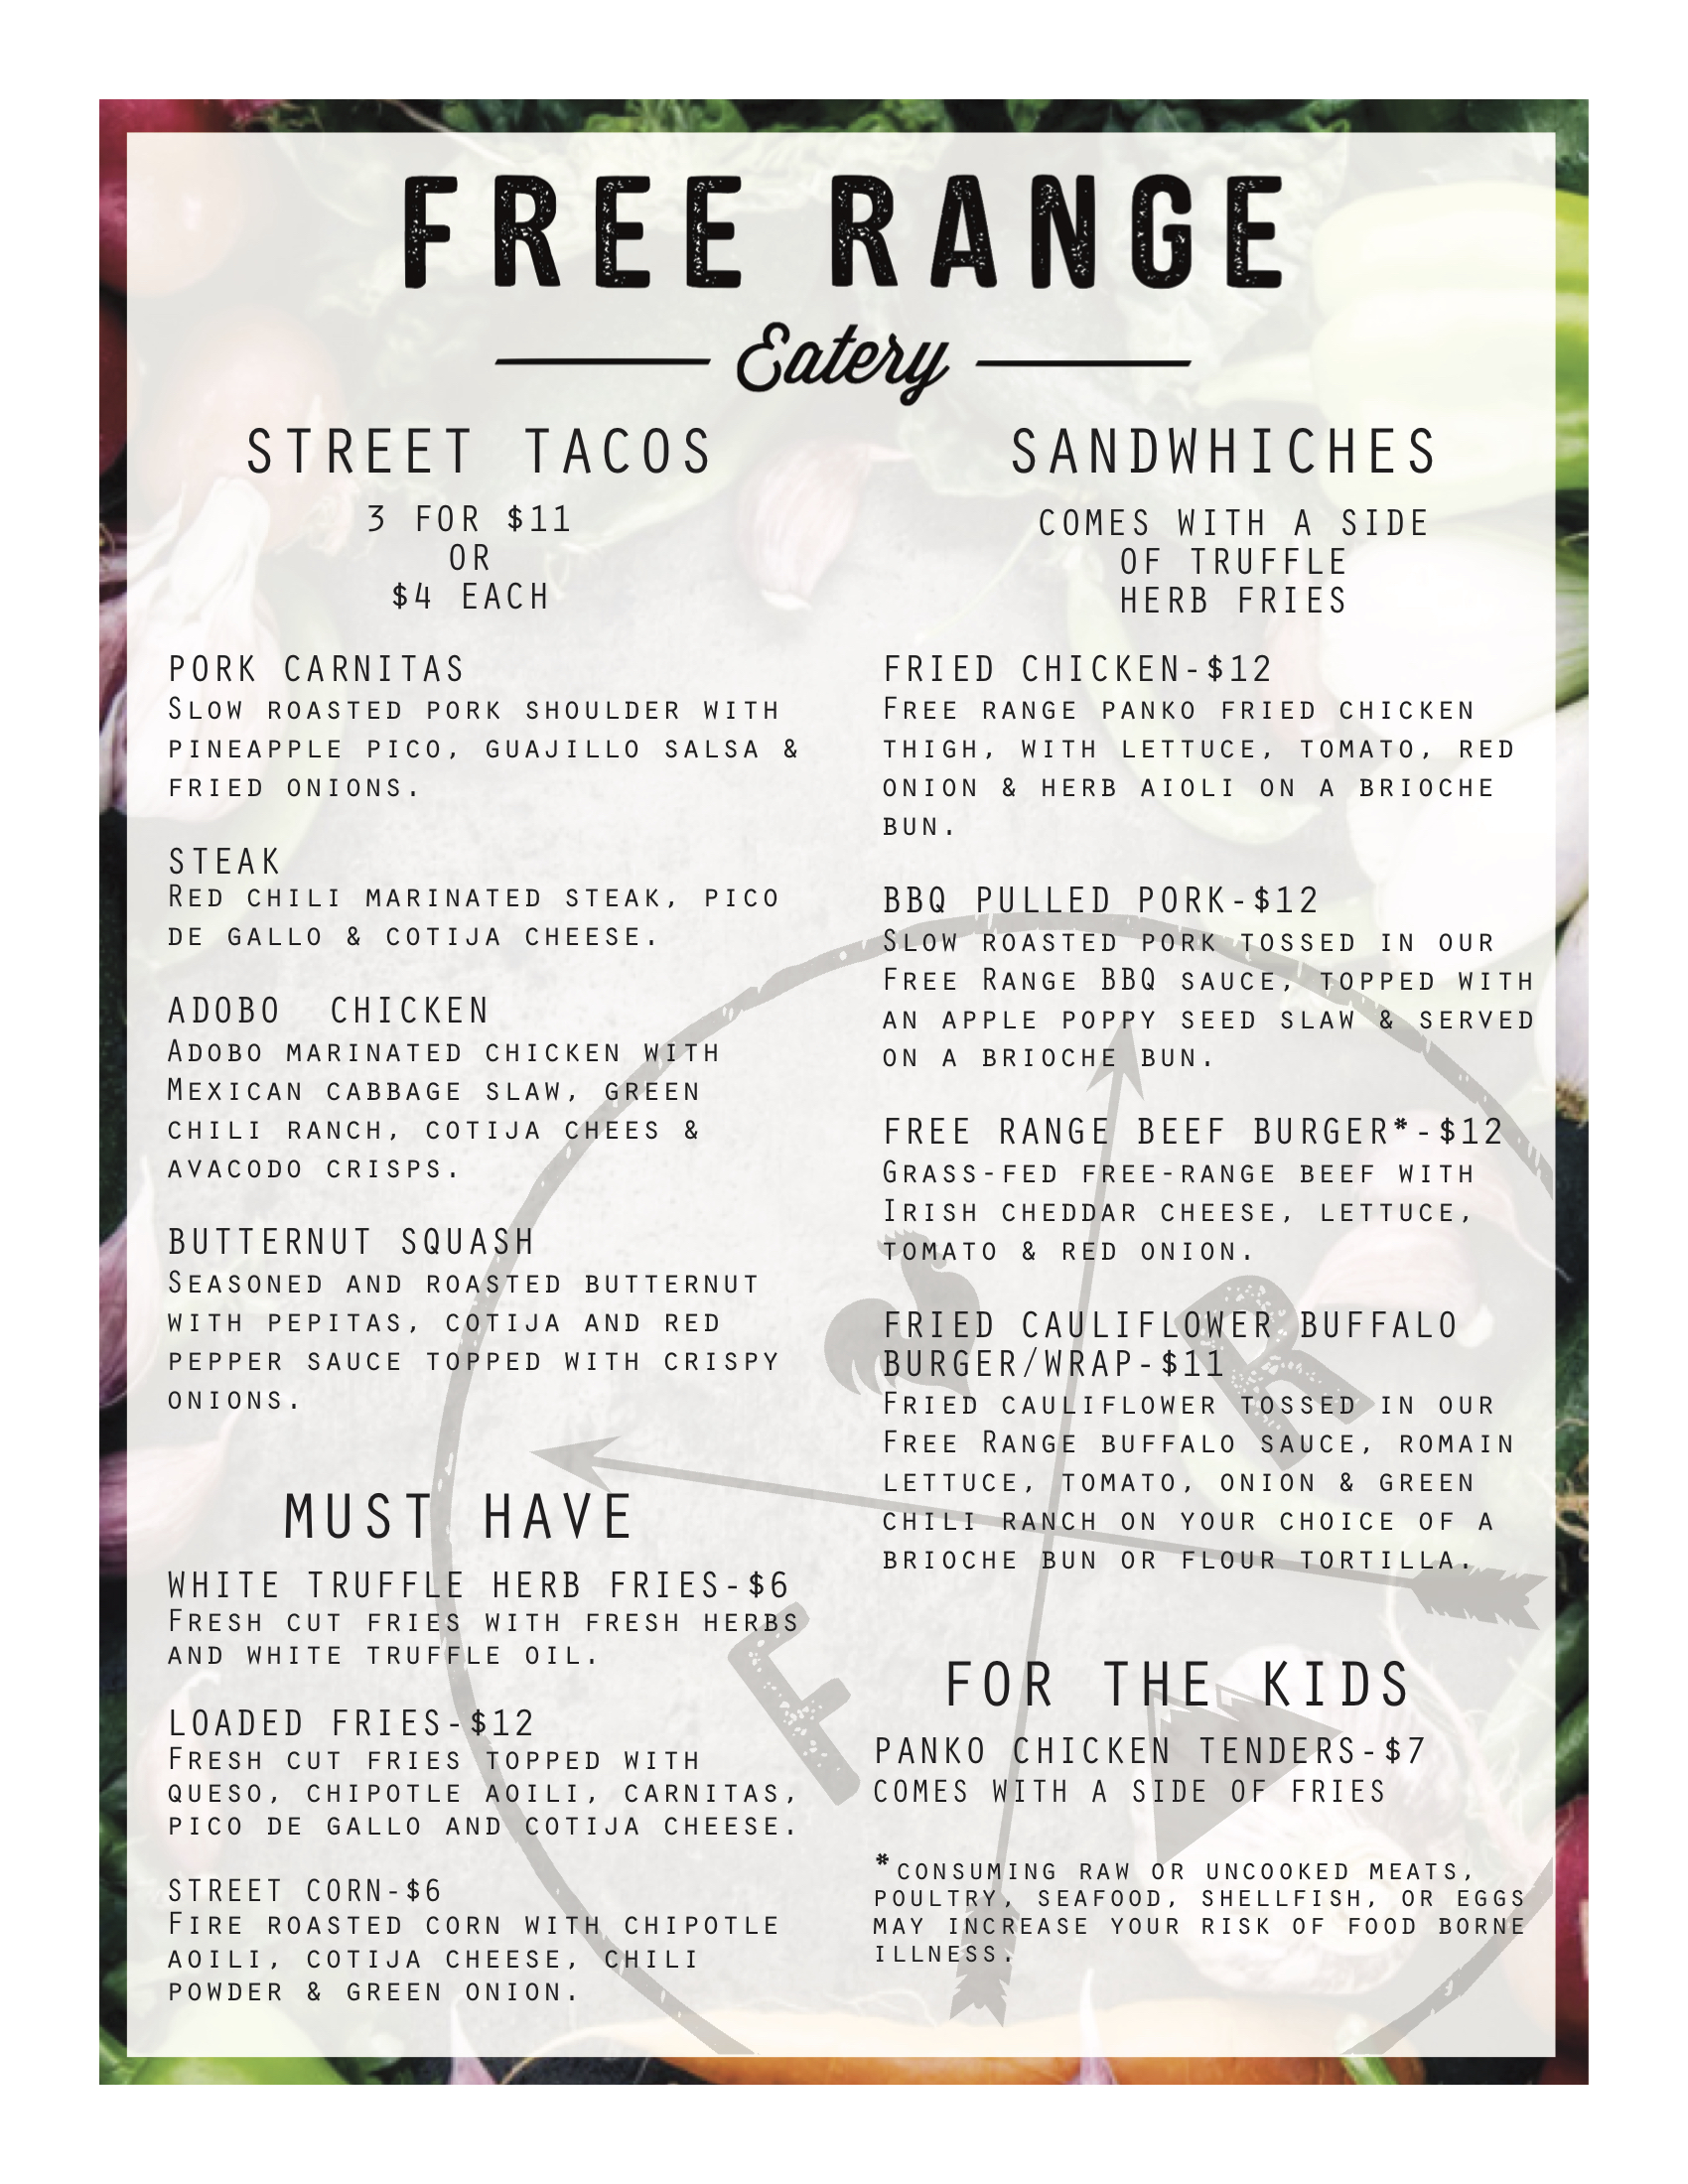 Free_Range_Food_Truck_Menu copy.jpg